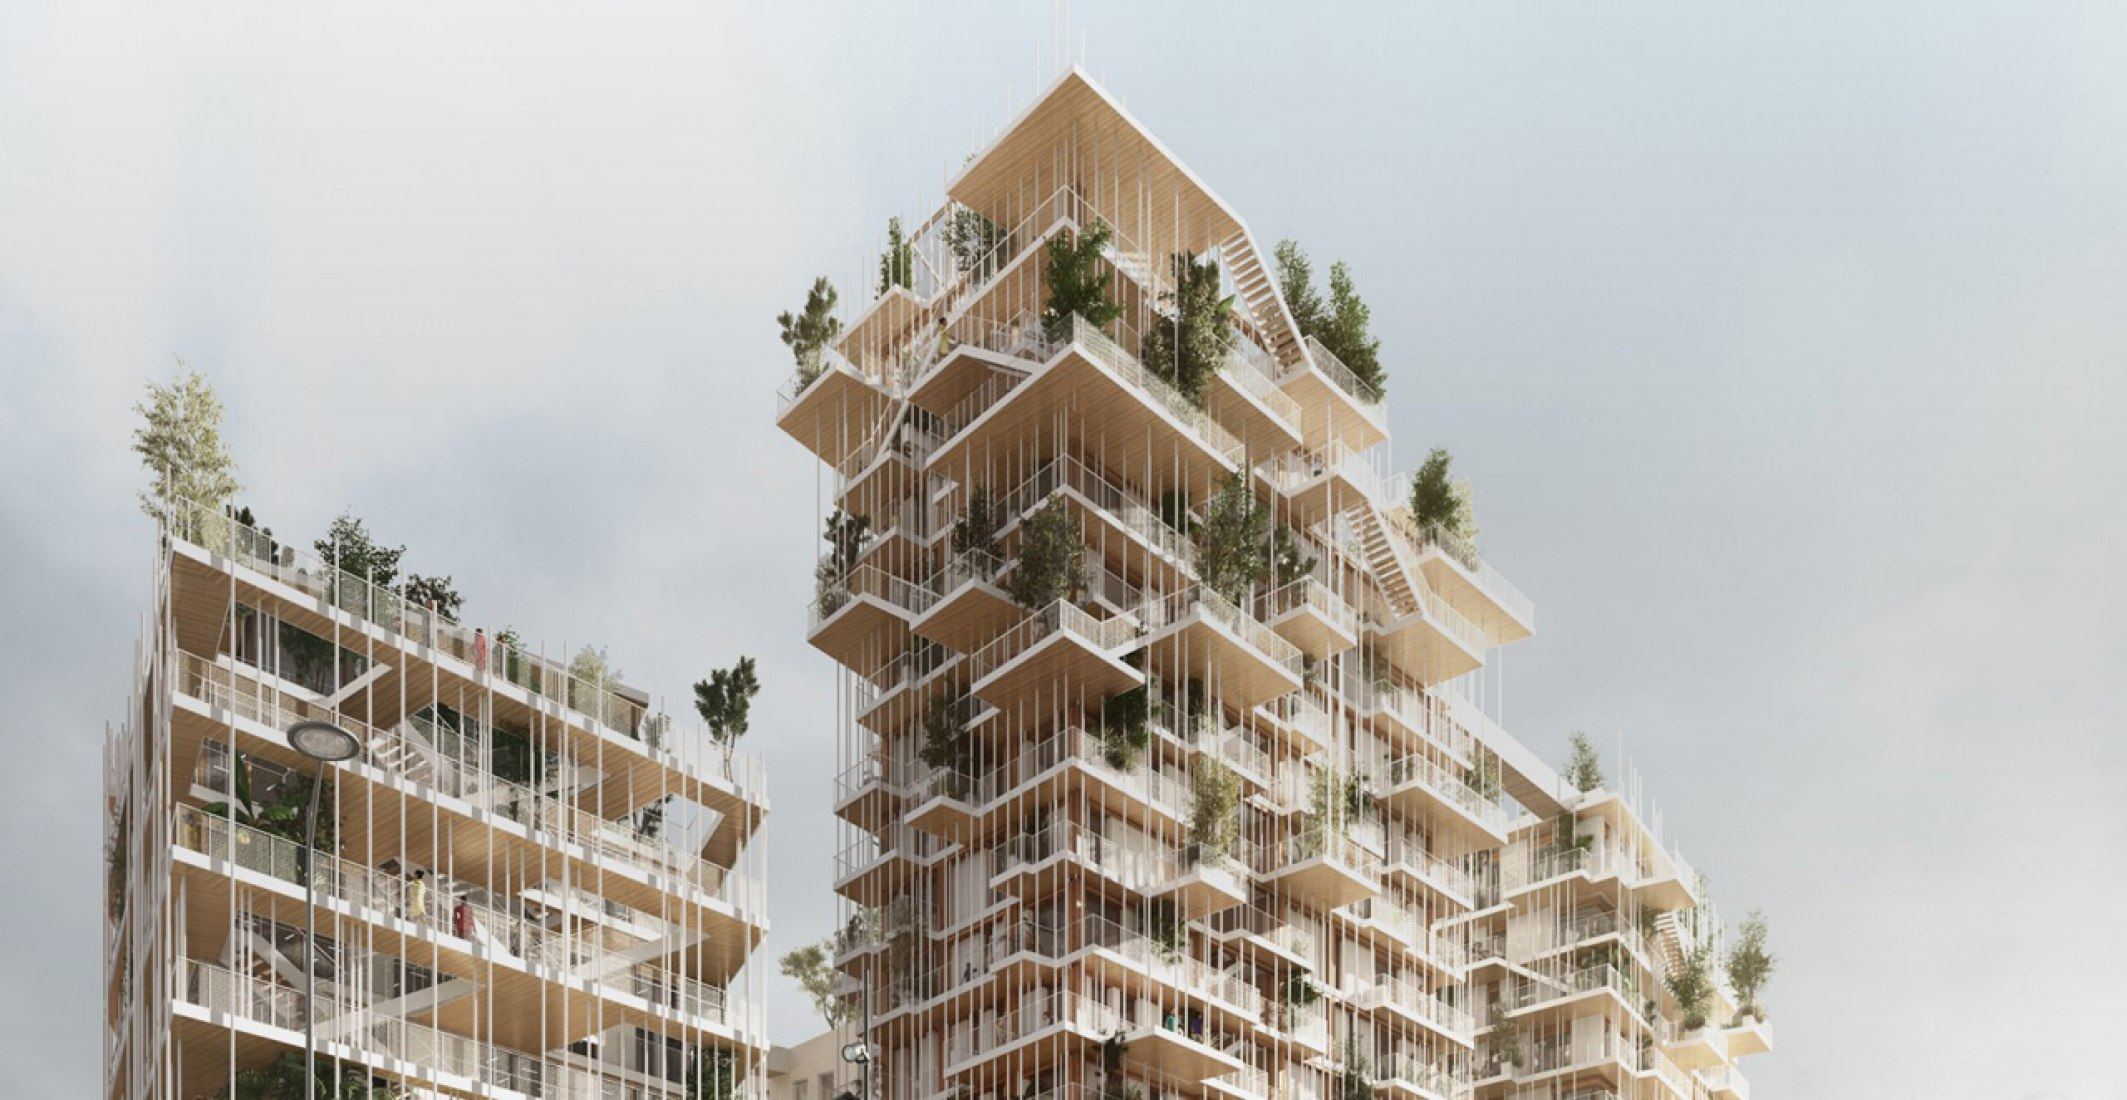 Exterior rendered view. Canopia by Sou Fujimoto and Laisné Roussel. Image © Sou Fujimoto Architects, Laisné Roussel, rendering by Tàmas Fisher and Morph.